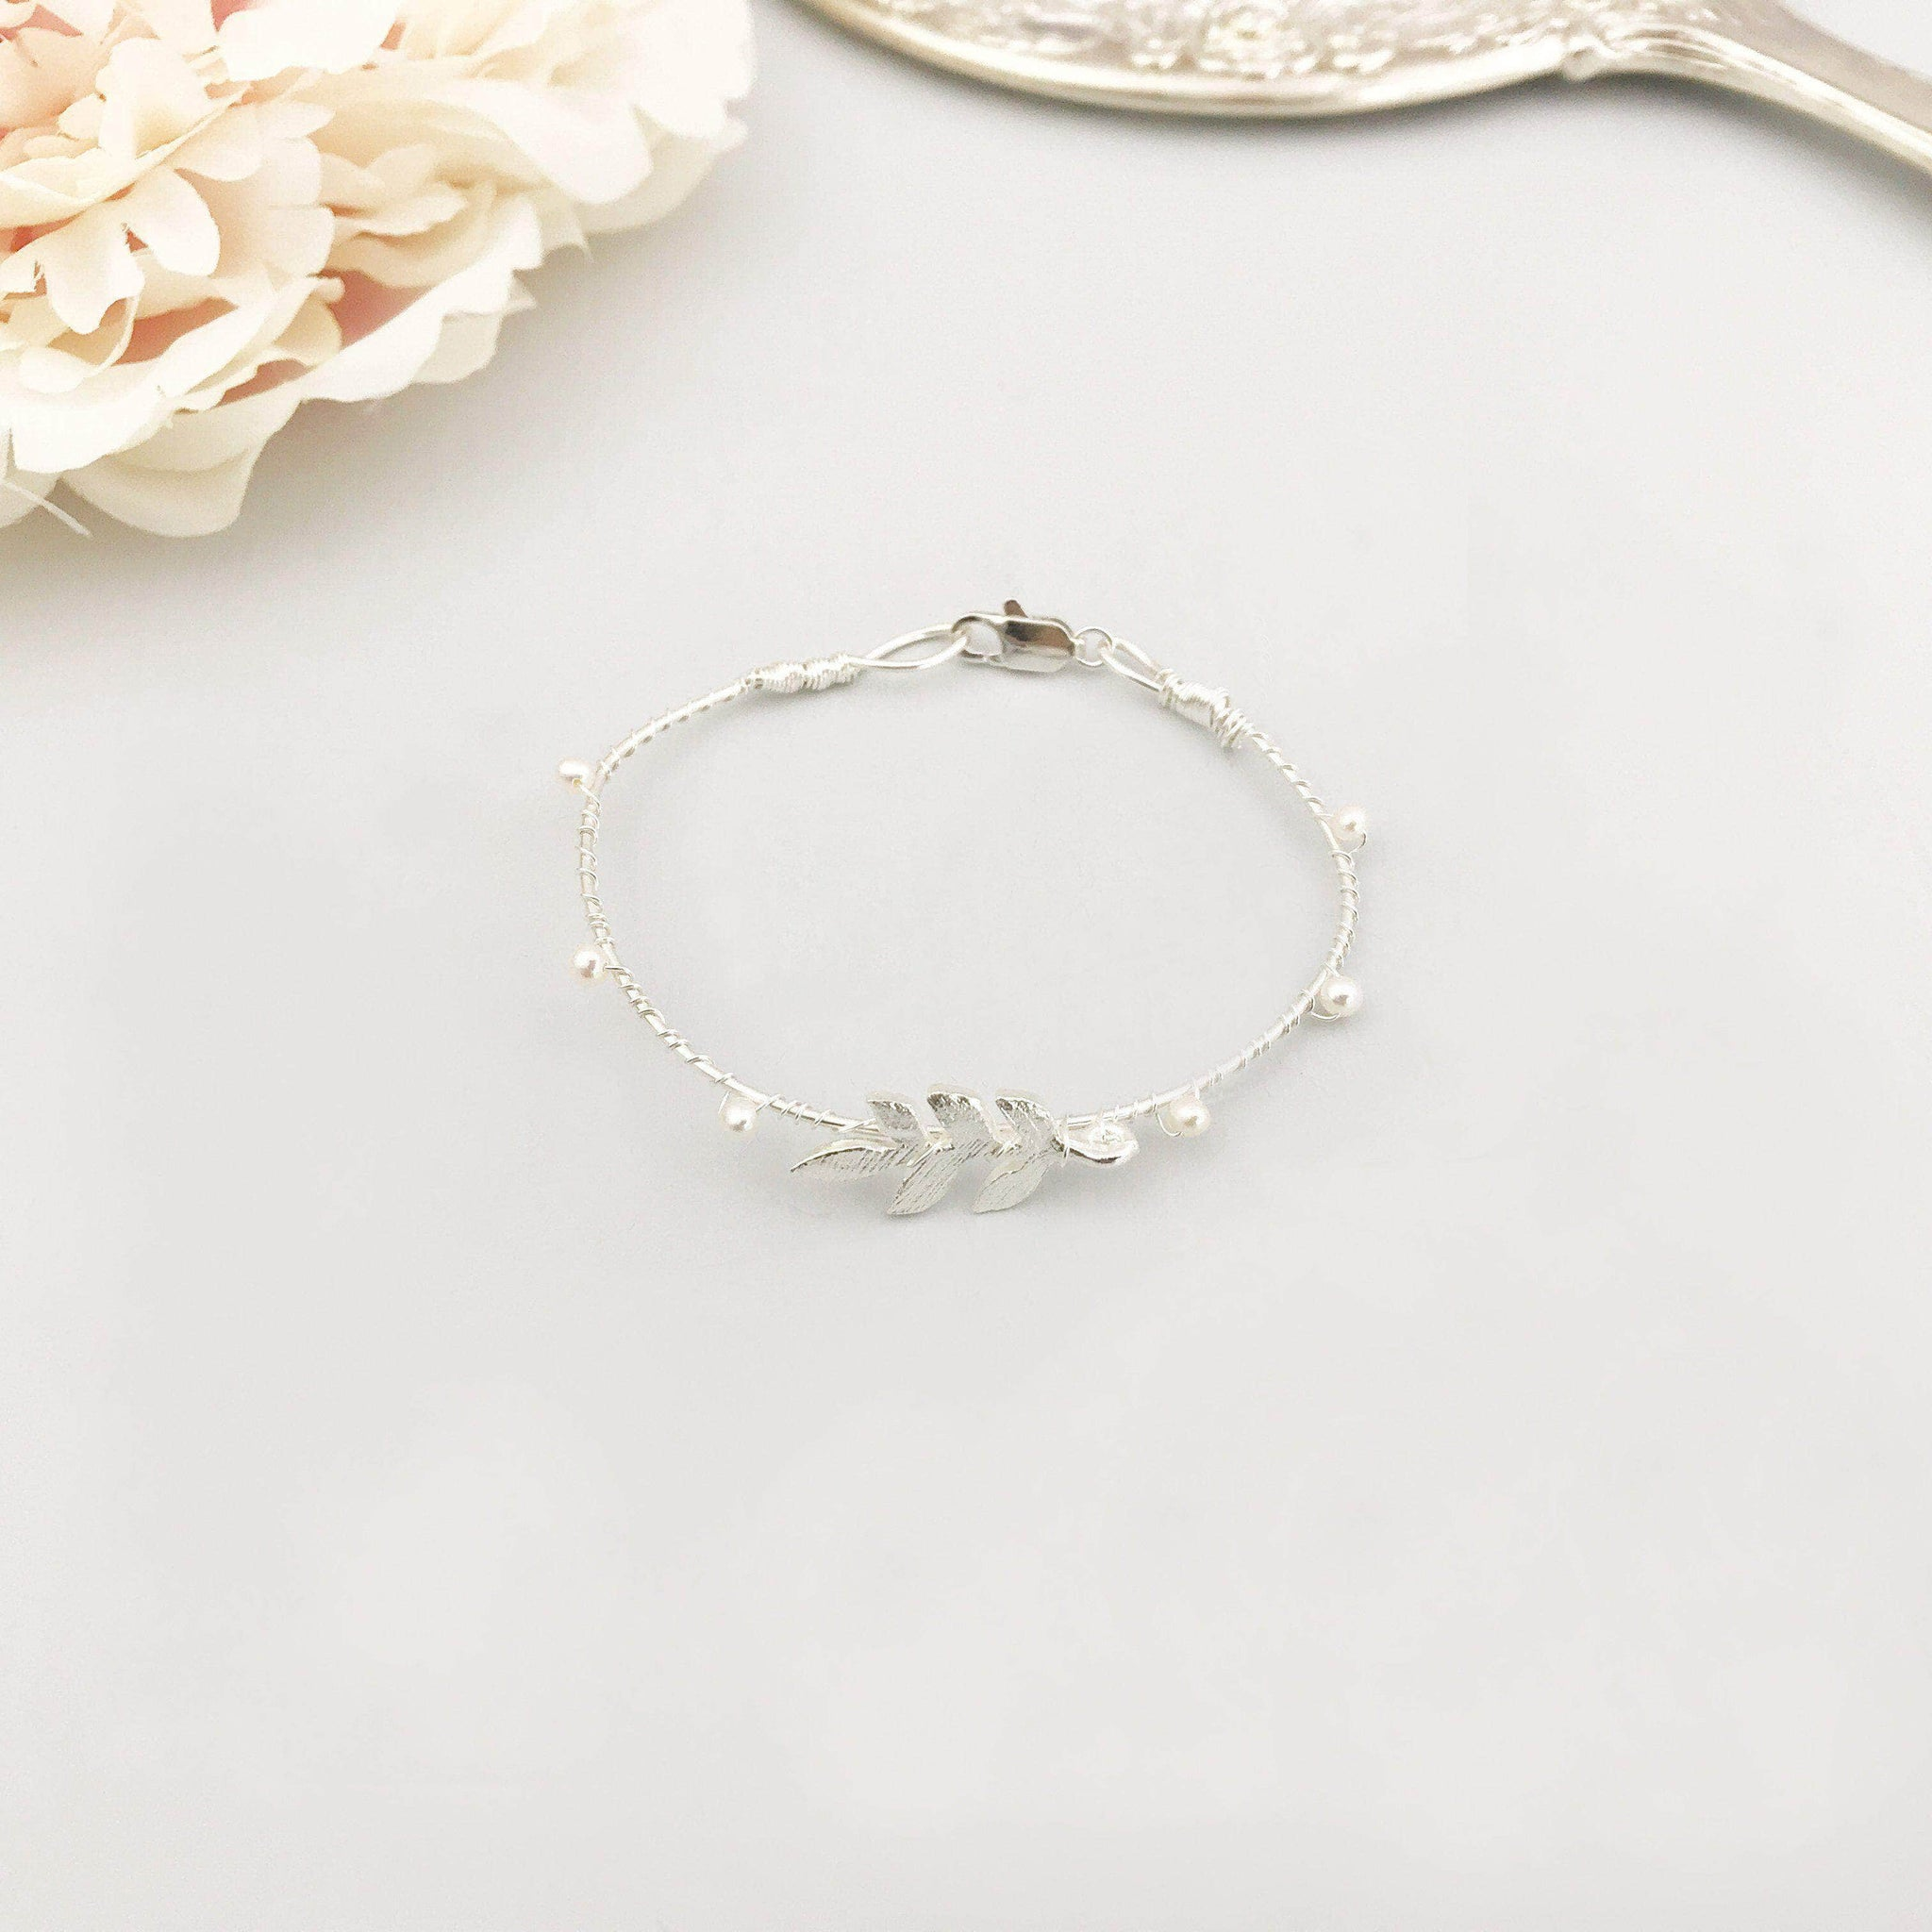 delicate blake day wedding cuff bracelets jules bracelet appliqu ivory bridal jewellery rhinestone pearl products bellagio